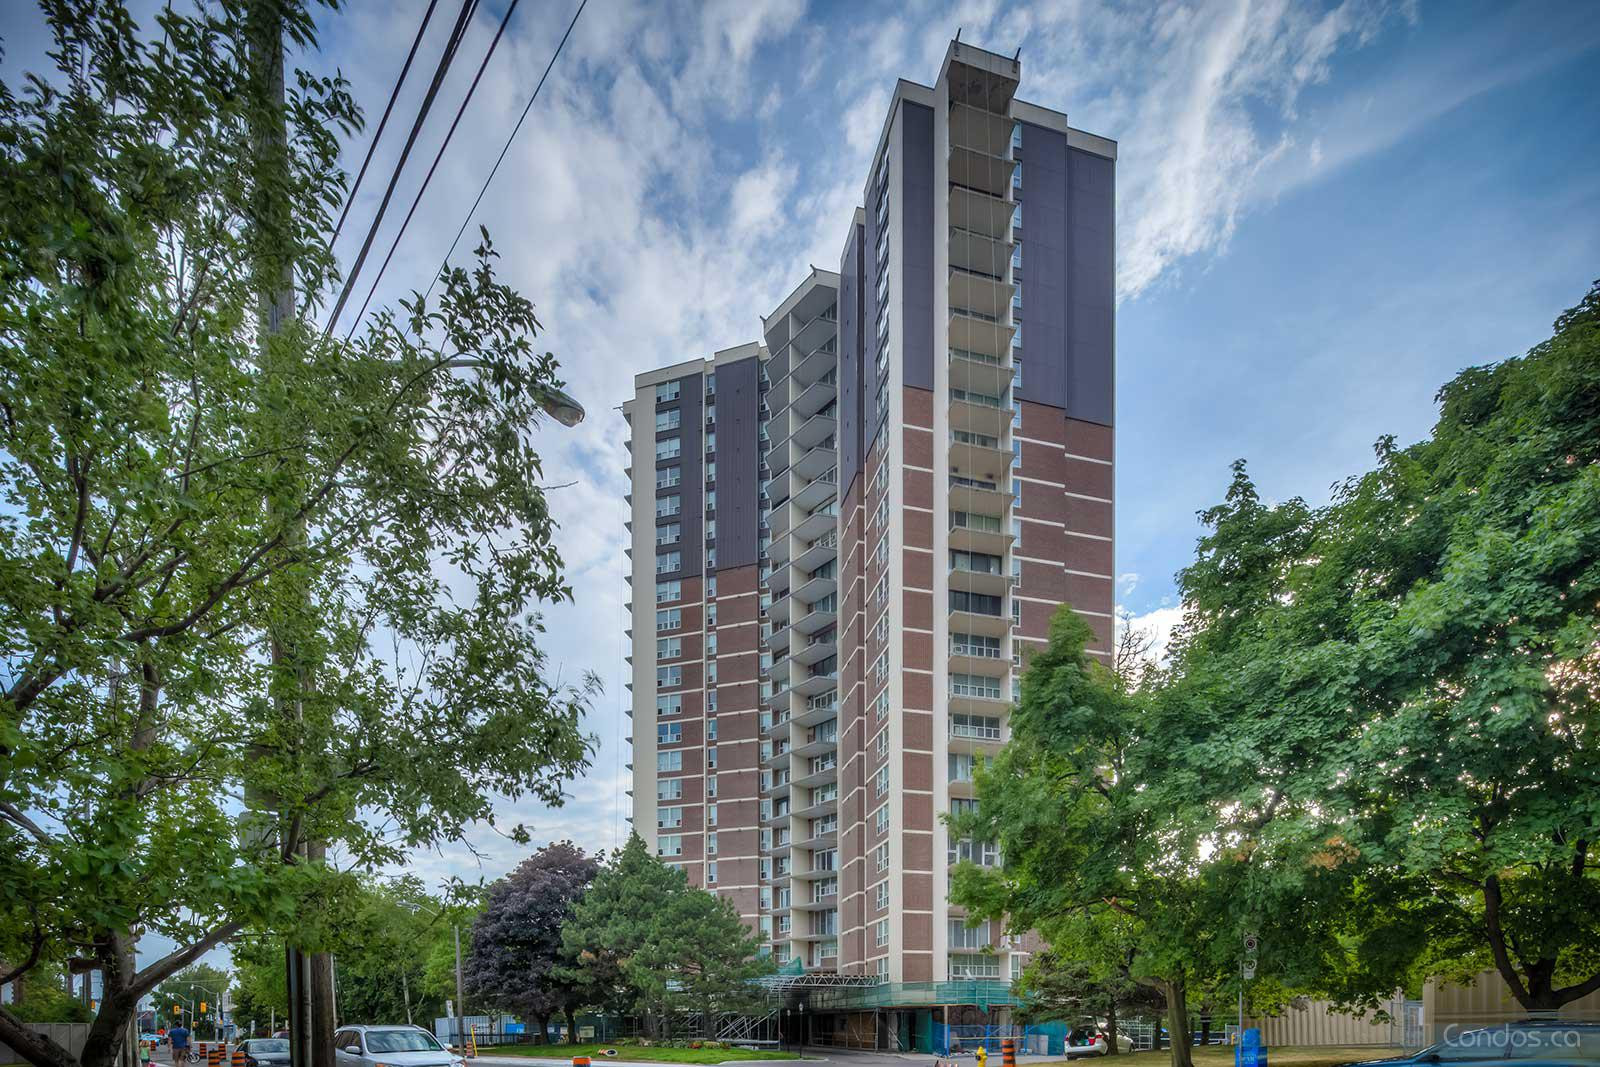 Helliwell Place at 980 Broadview Ave, Toronto 0